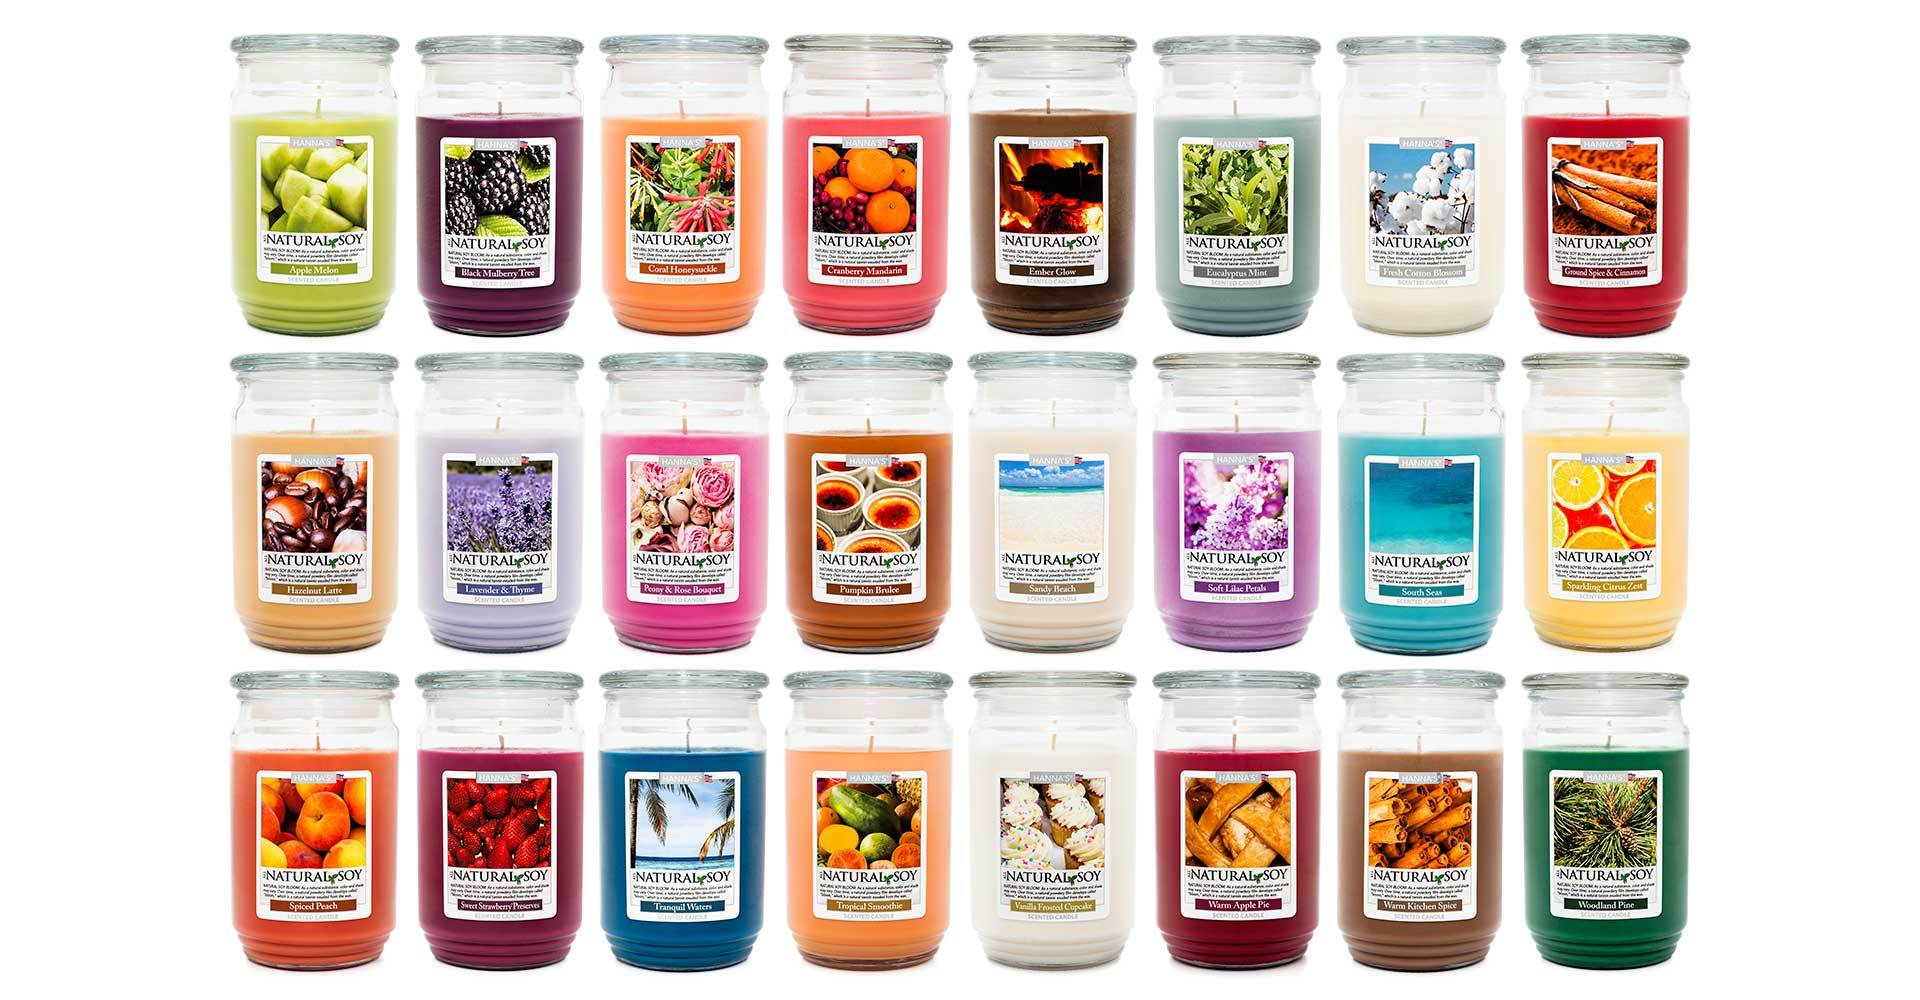 Natural Soy Ember Glow Scented Soy Candle 100% Soy Candles Candlemart.com $ 12.99